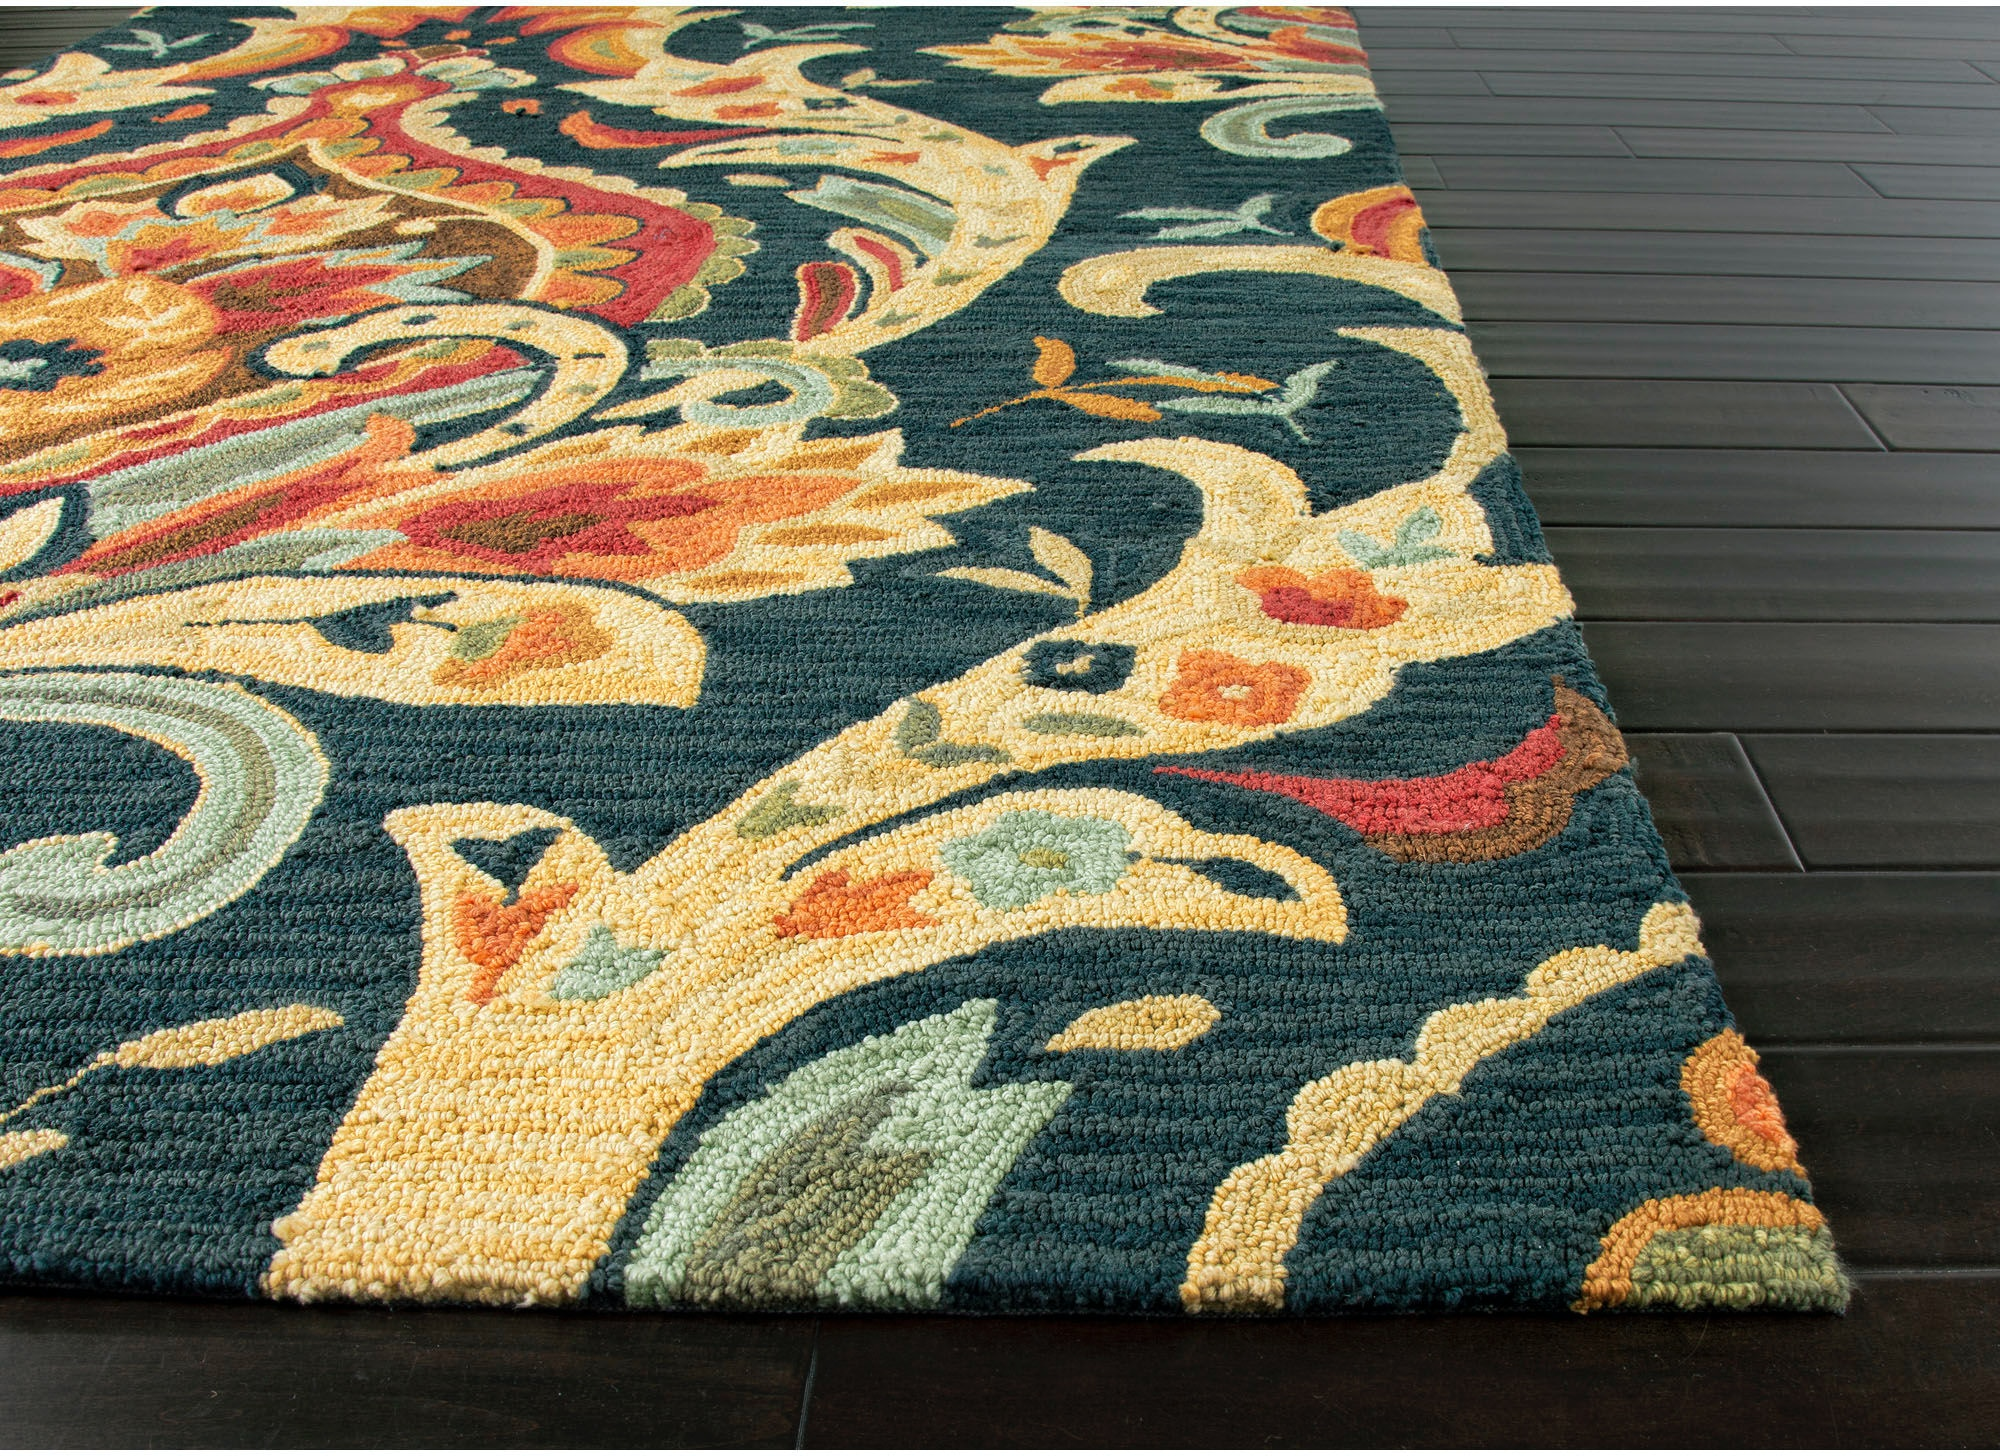 Jaipur Rugs Floor Coverings Hand Tufted Floral Pattern Polyester